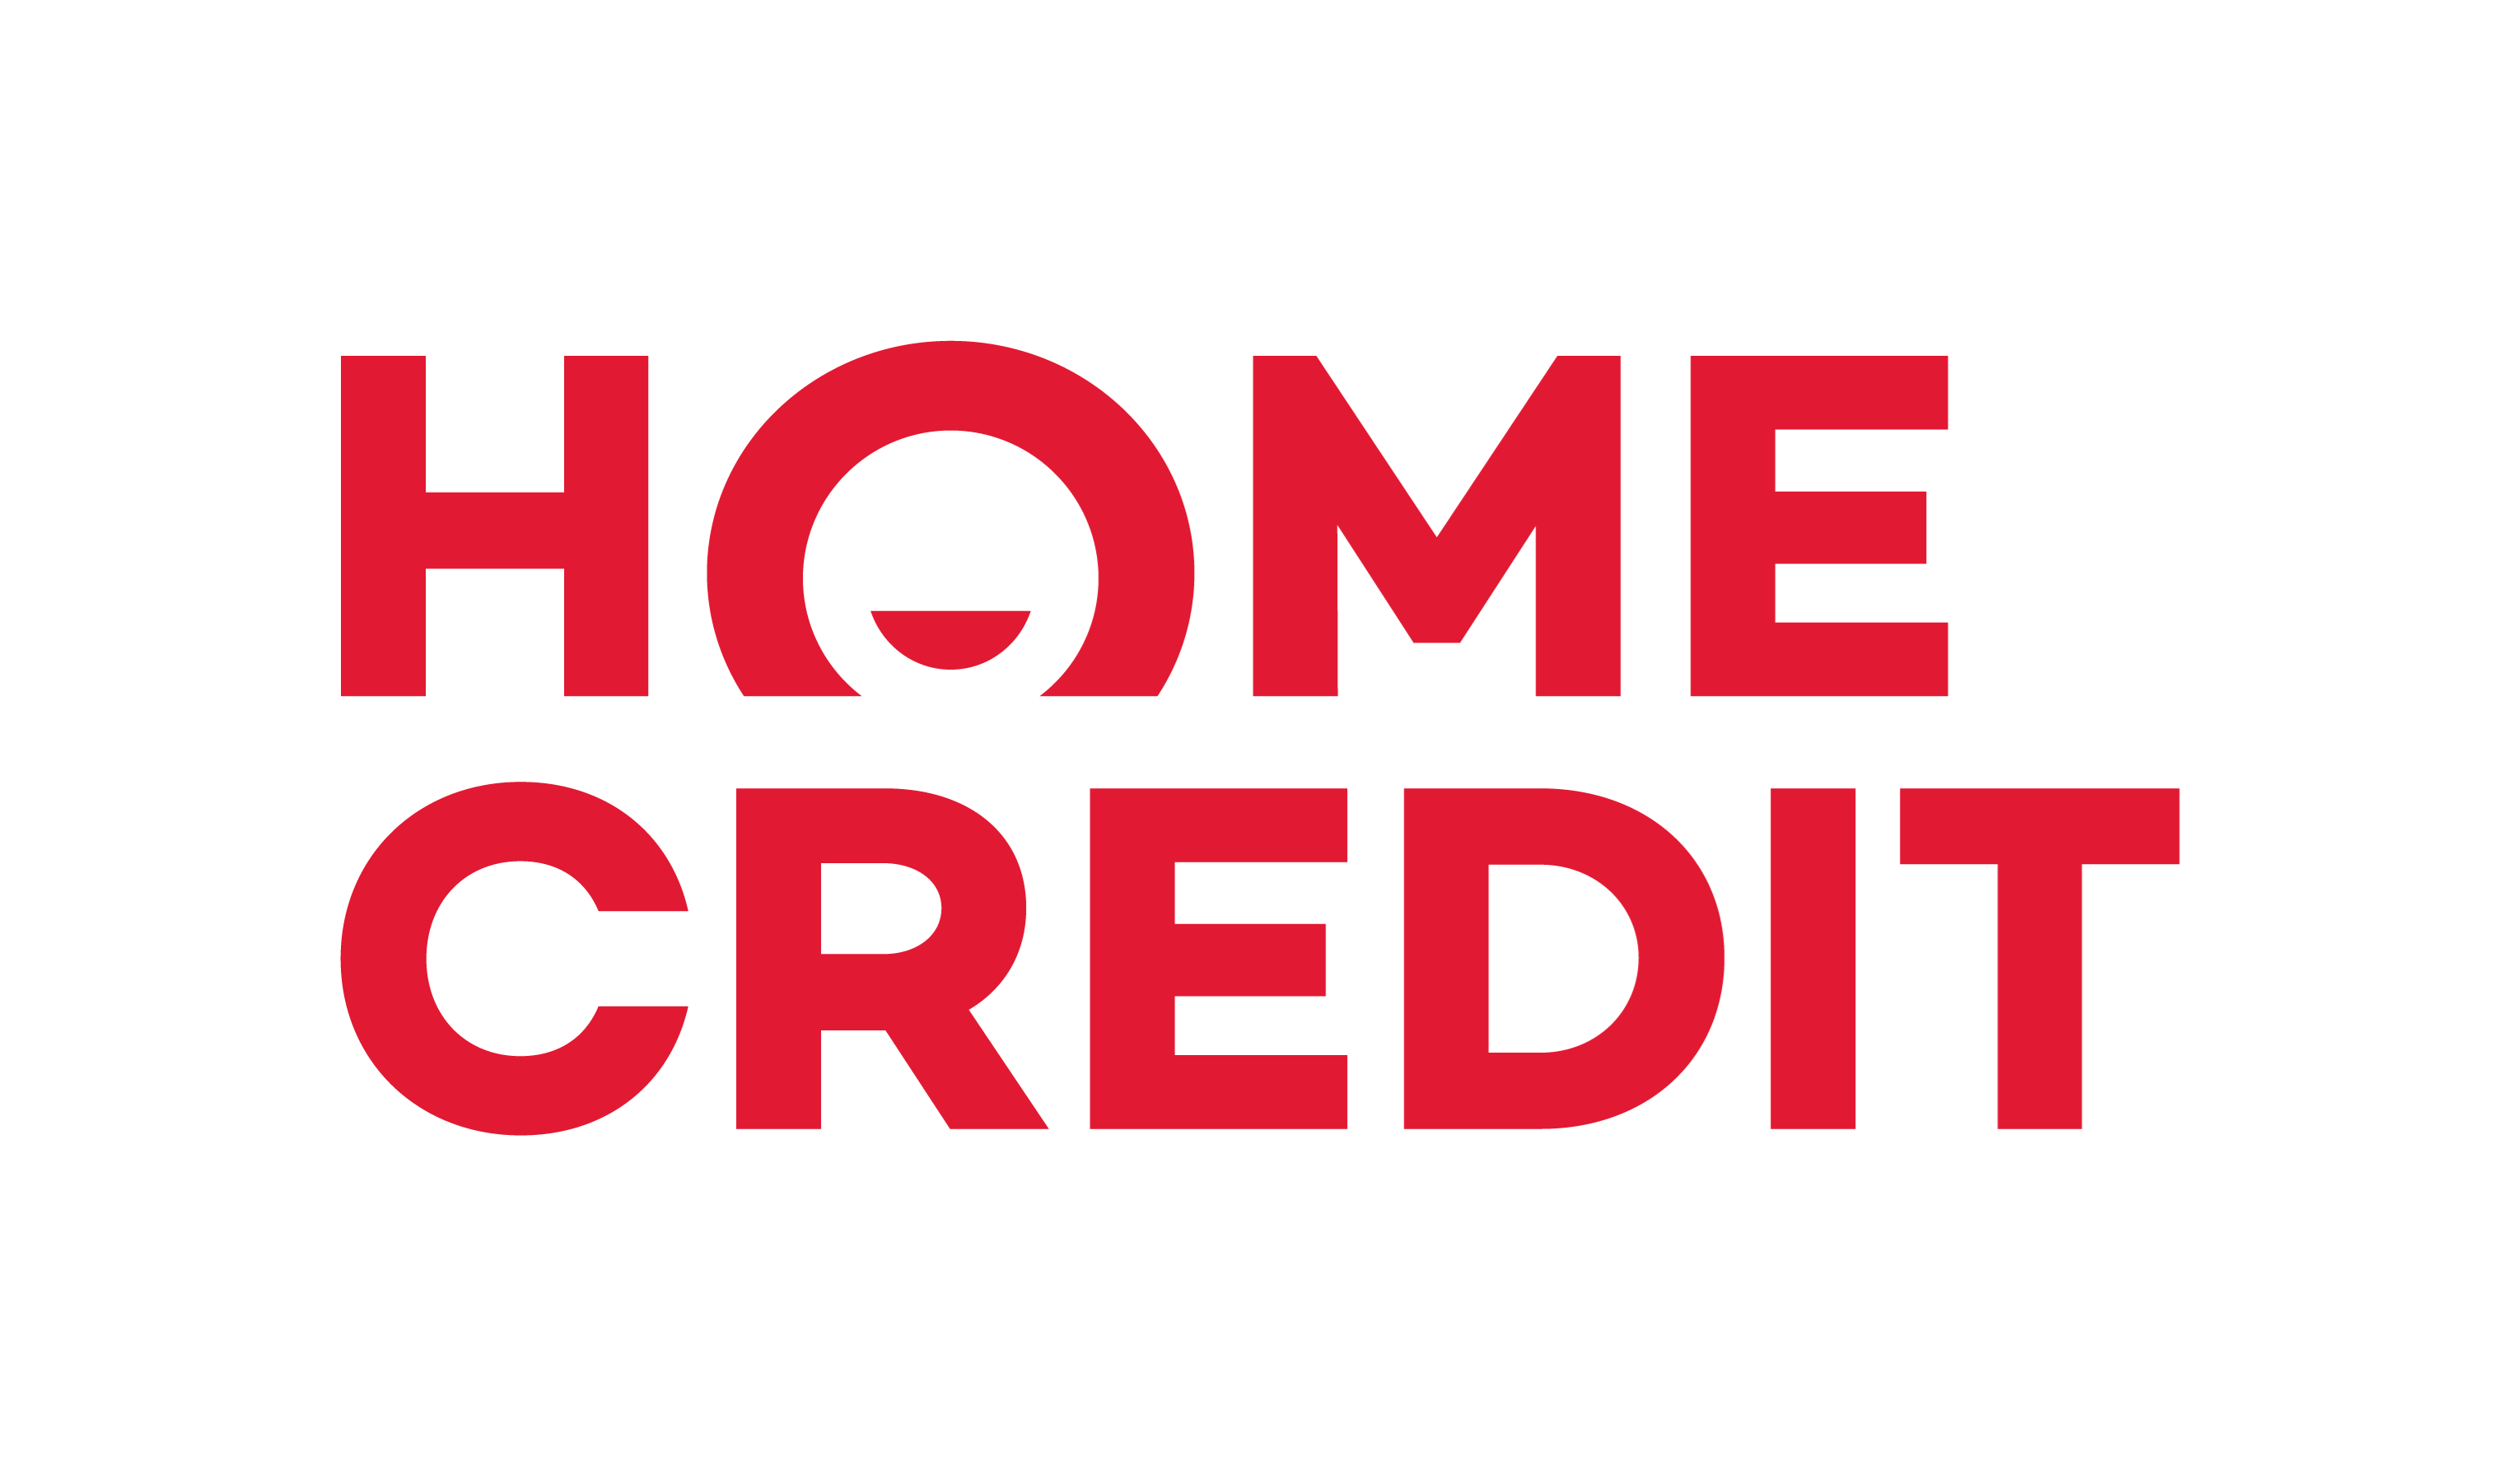 Home Credit Indonesia Recruitment Page For Project Process